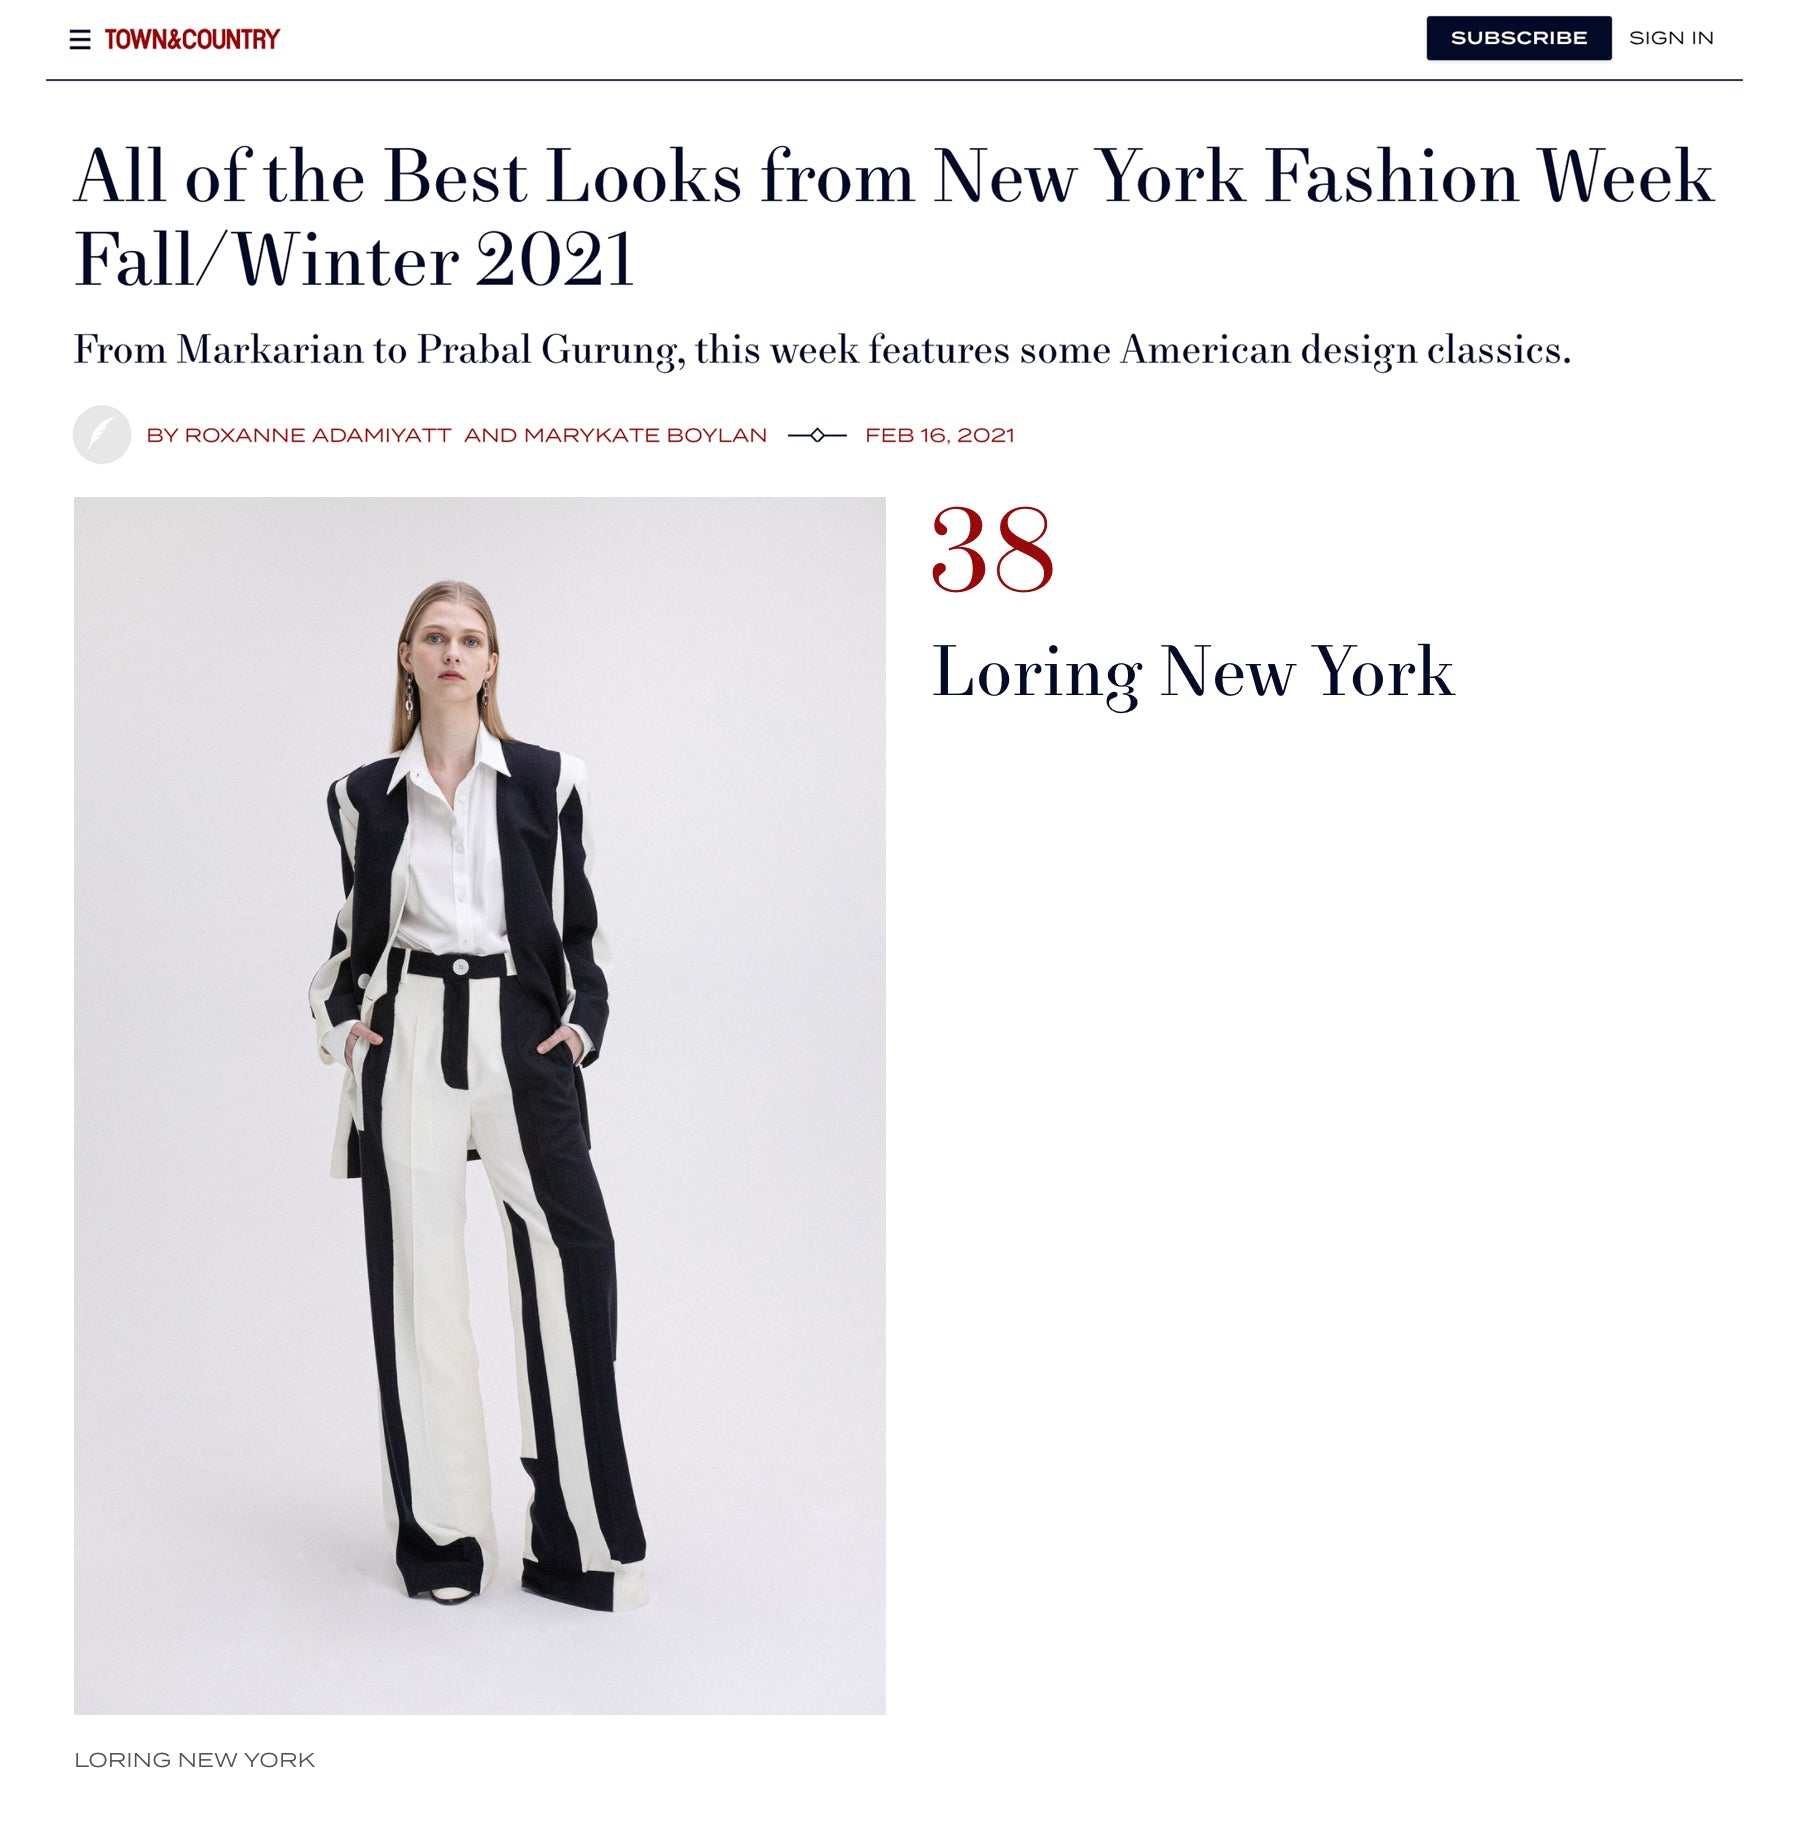 town and country - LORING NEW YORK - All of the Best Looks from New York Fashion Week Fall/Winter 2021